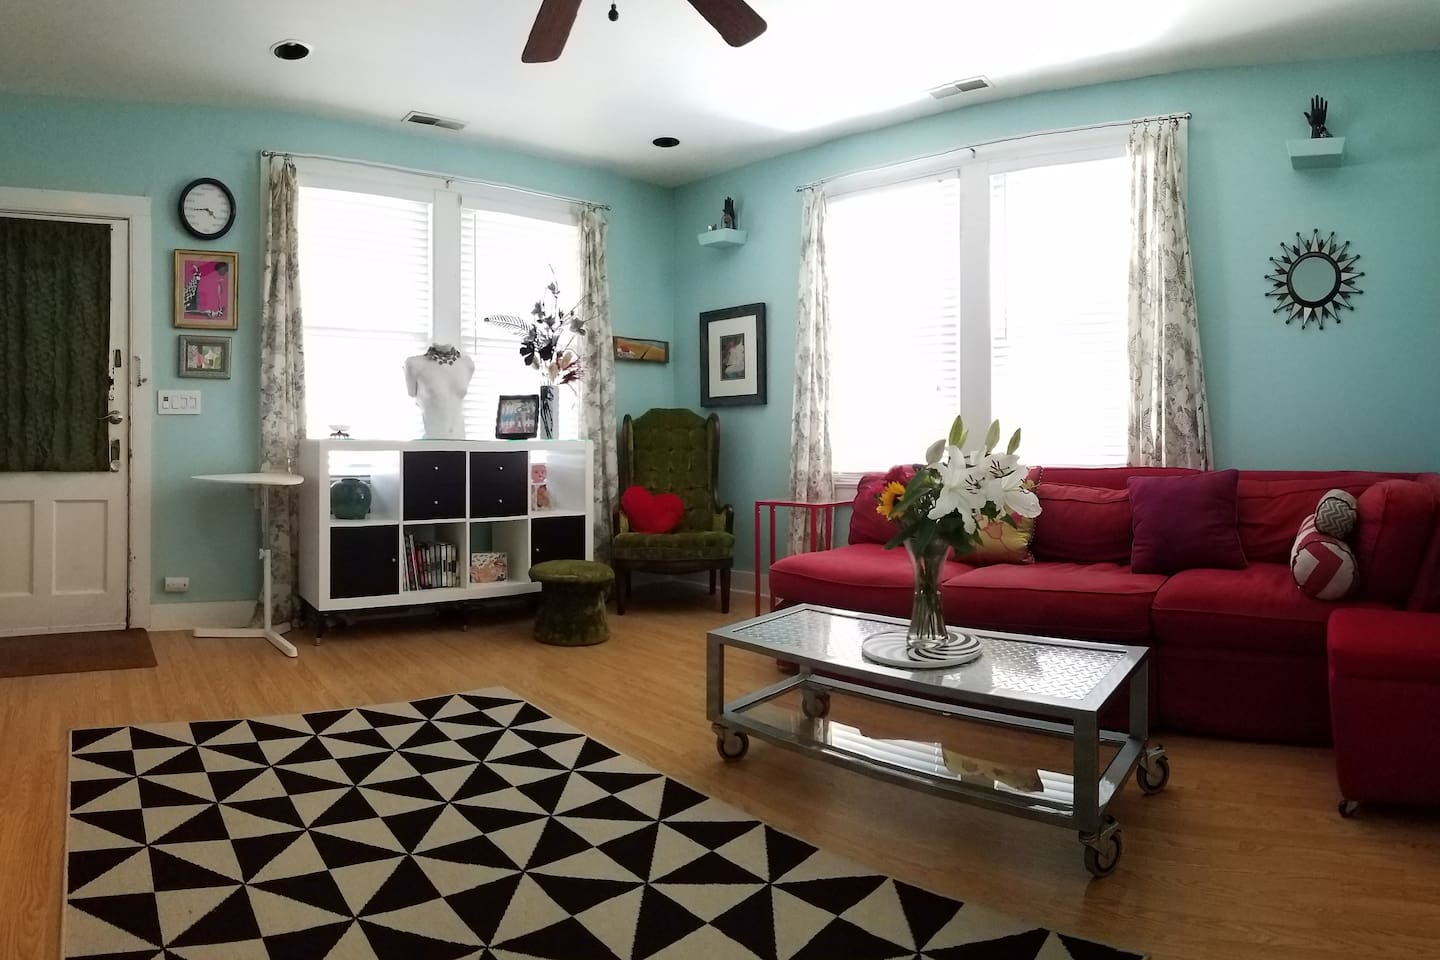 Is this a living room,  or a whimsical art gallery with a sectional couch and personal kitchenette? Enjoy a cup of coffee while perusing some of the eclectic art in this colorful den!